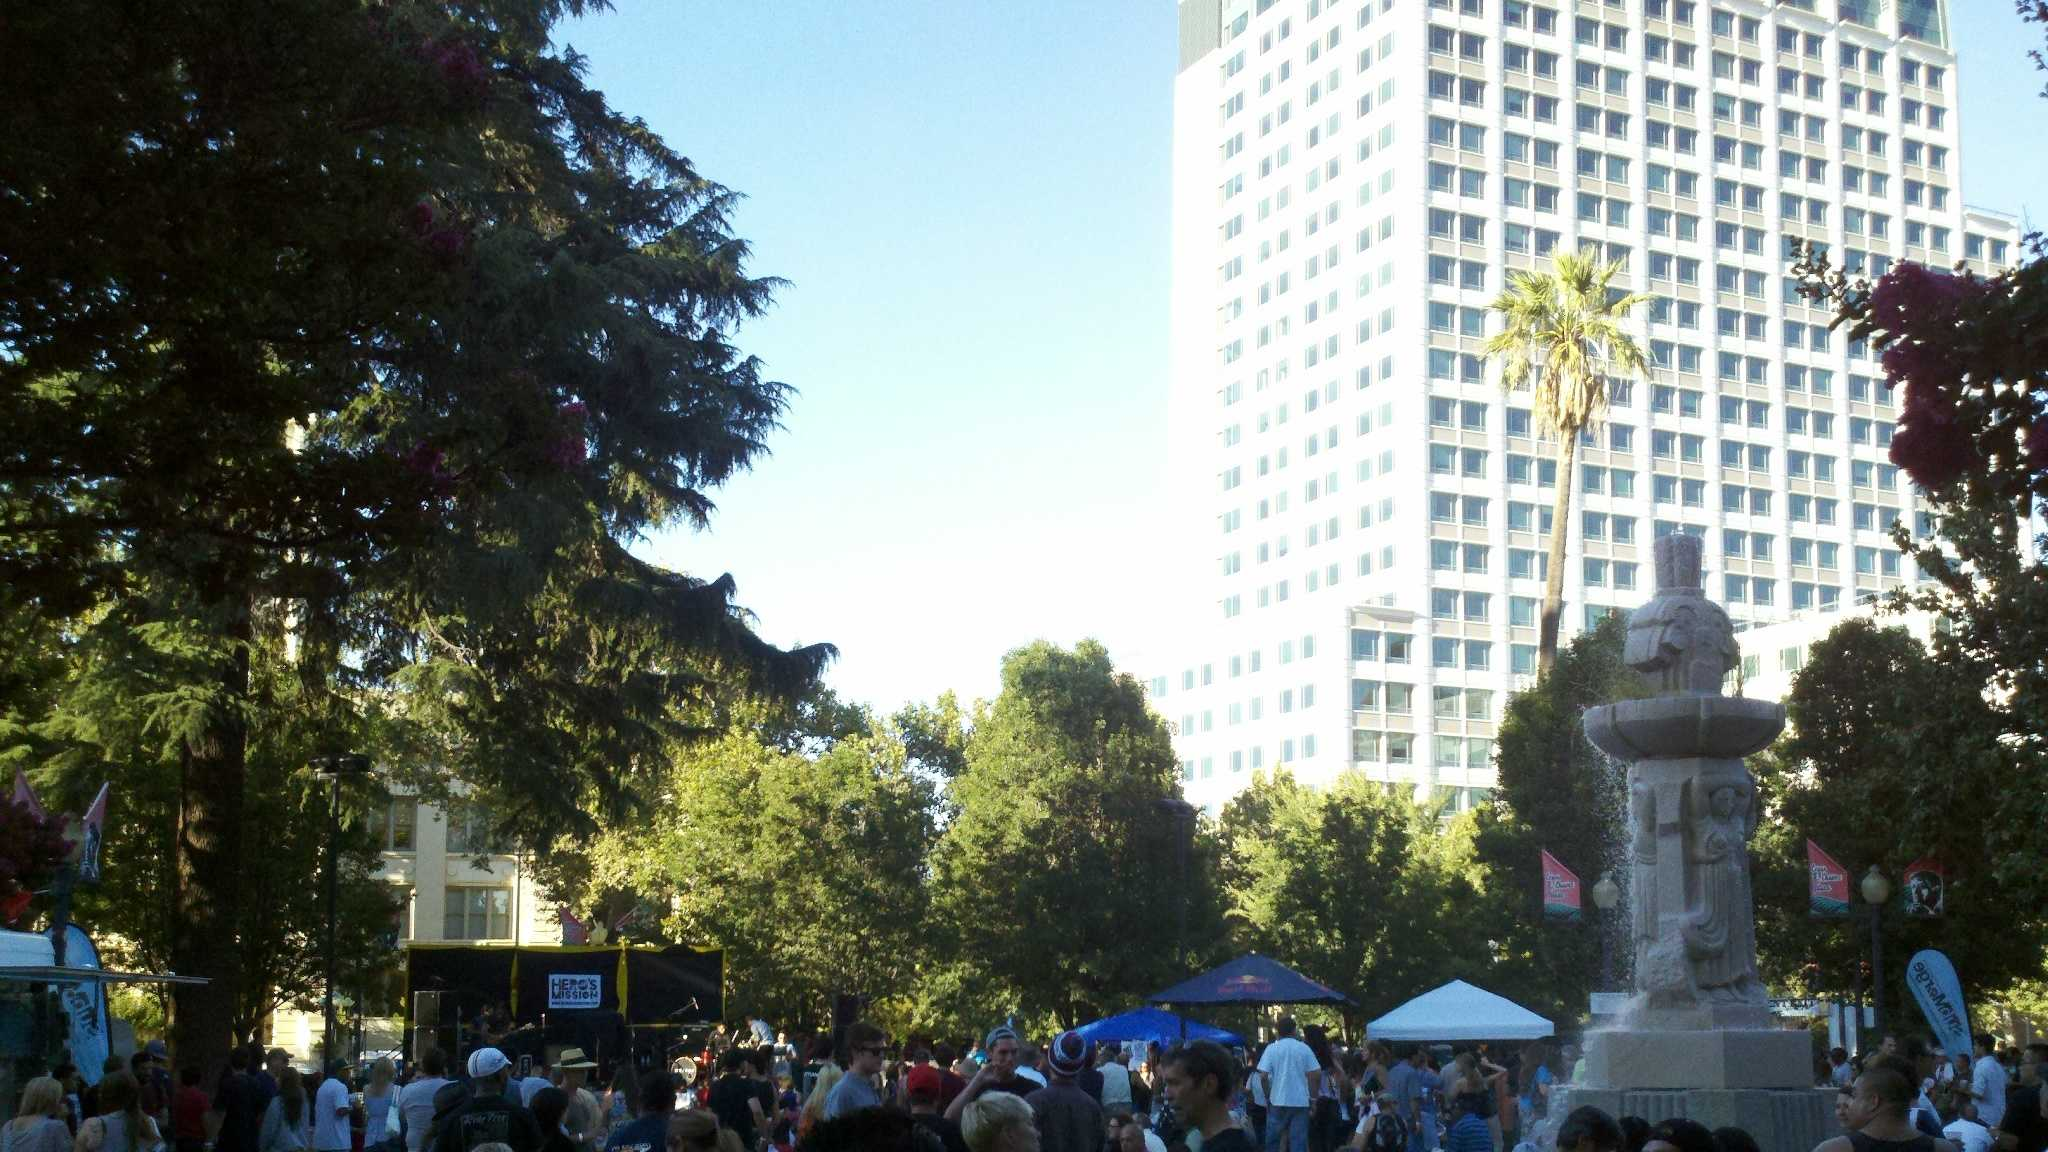 The Concerts in the Park series at Cesar Chavez was in full swing Friday in downtown Sacramento (July 27, 2012).